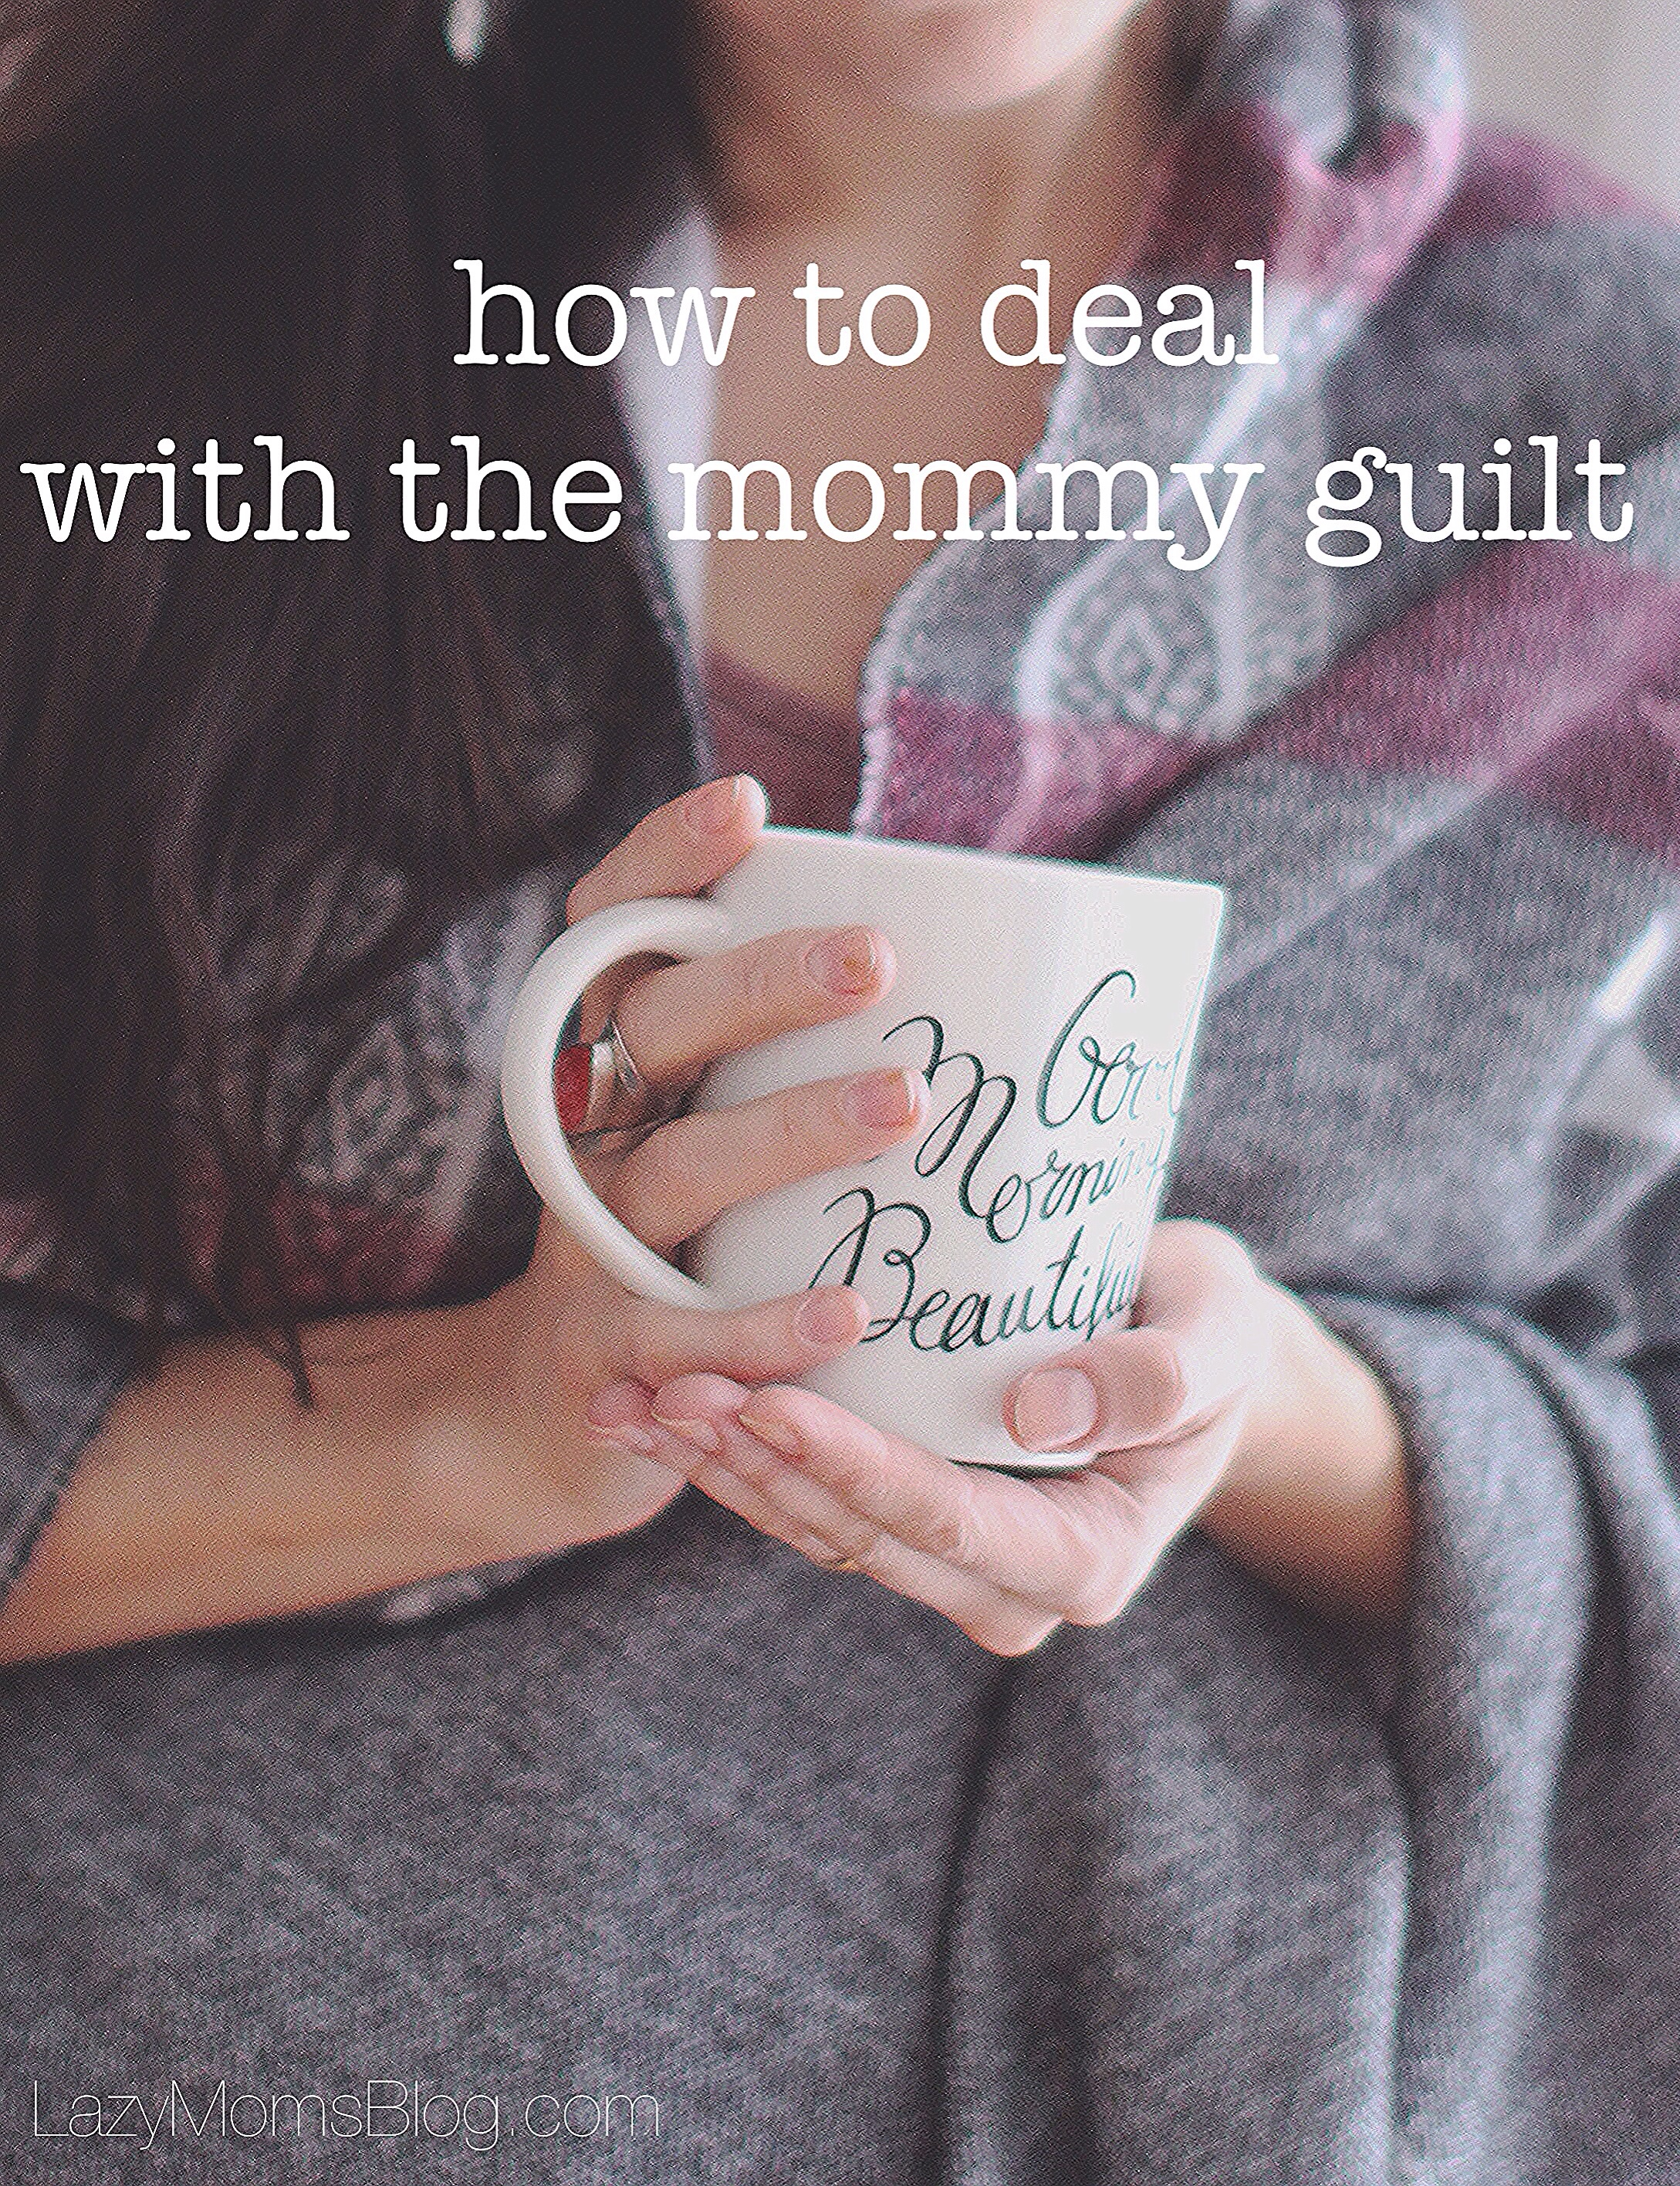 Even if you try your best, some days you just don't have the energy to play, somedays  you raise your voice and yell, and then you feel guilty about it. How to deal with the mommy guilt, great tips for moms! #parentingtips #motherhood